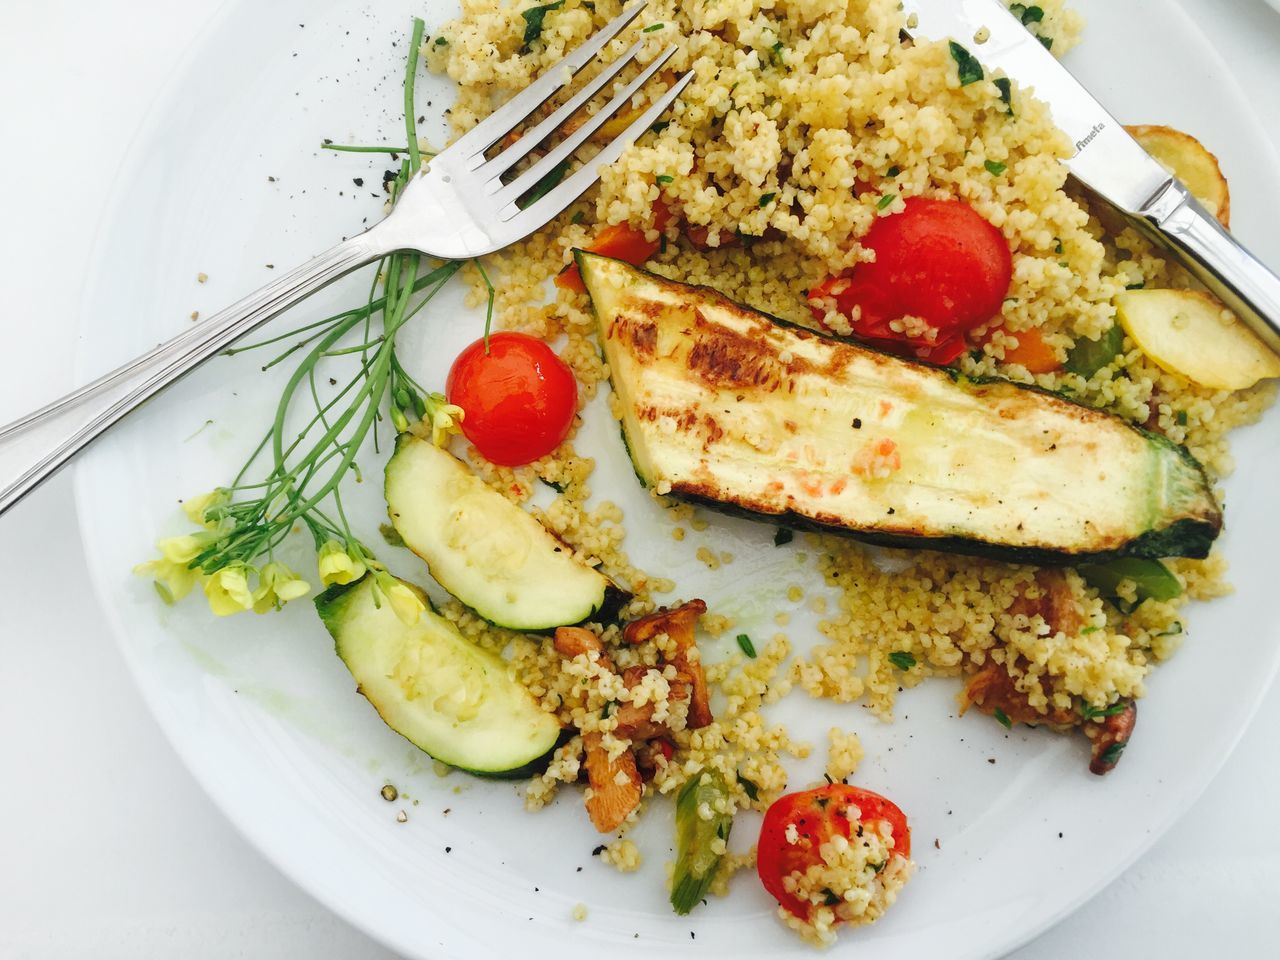 Cherry Tomato Courgette Food Freshness Healthy Eating Lunch Millet Plate Ready-to-eat Served Serving Size Temptation Tomato Vegetable